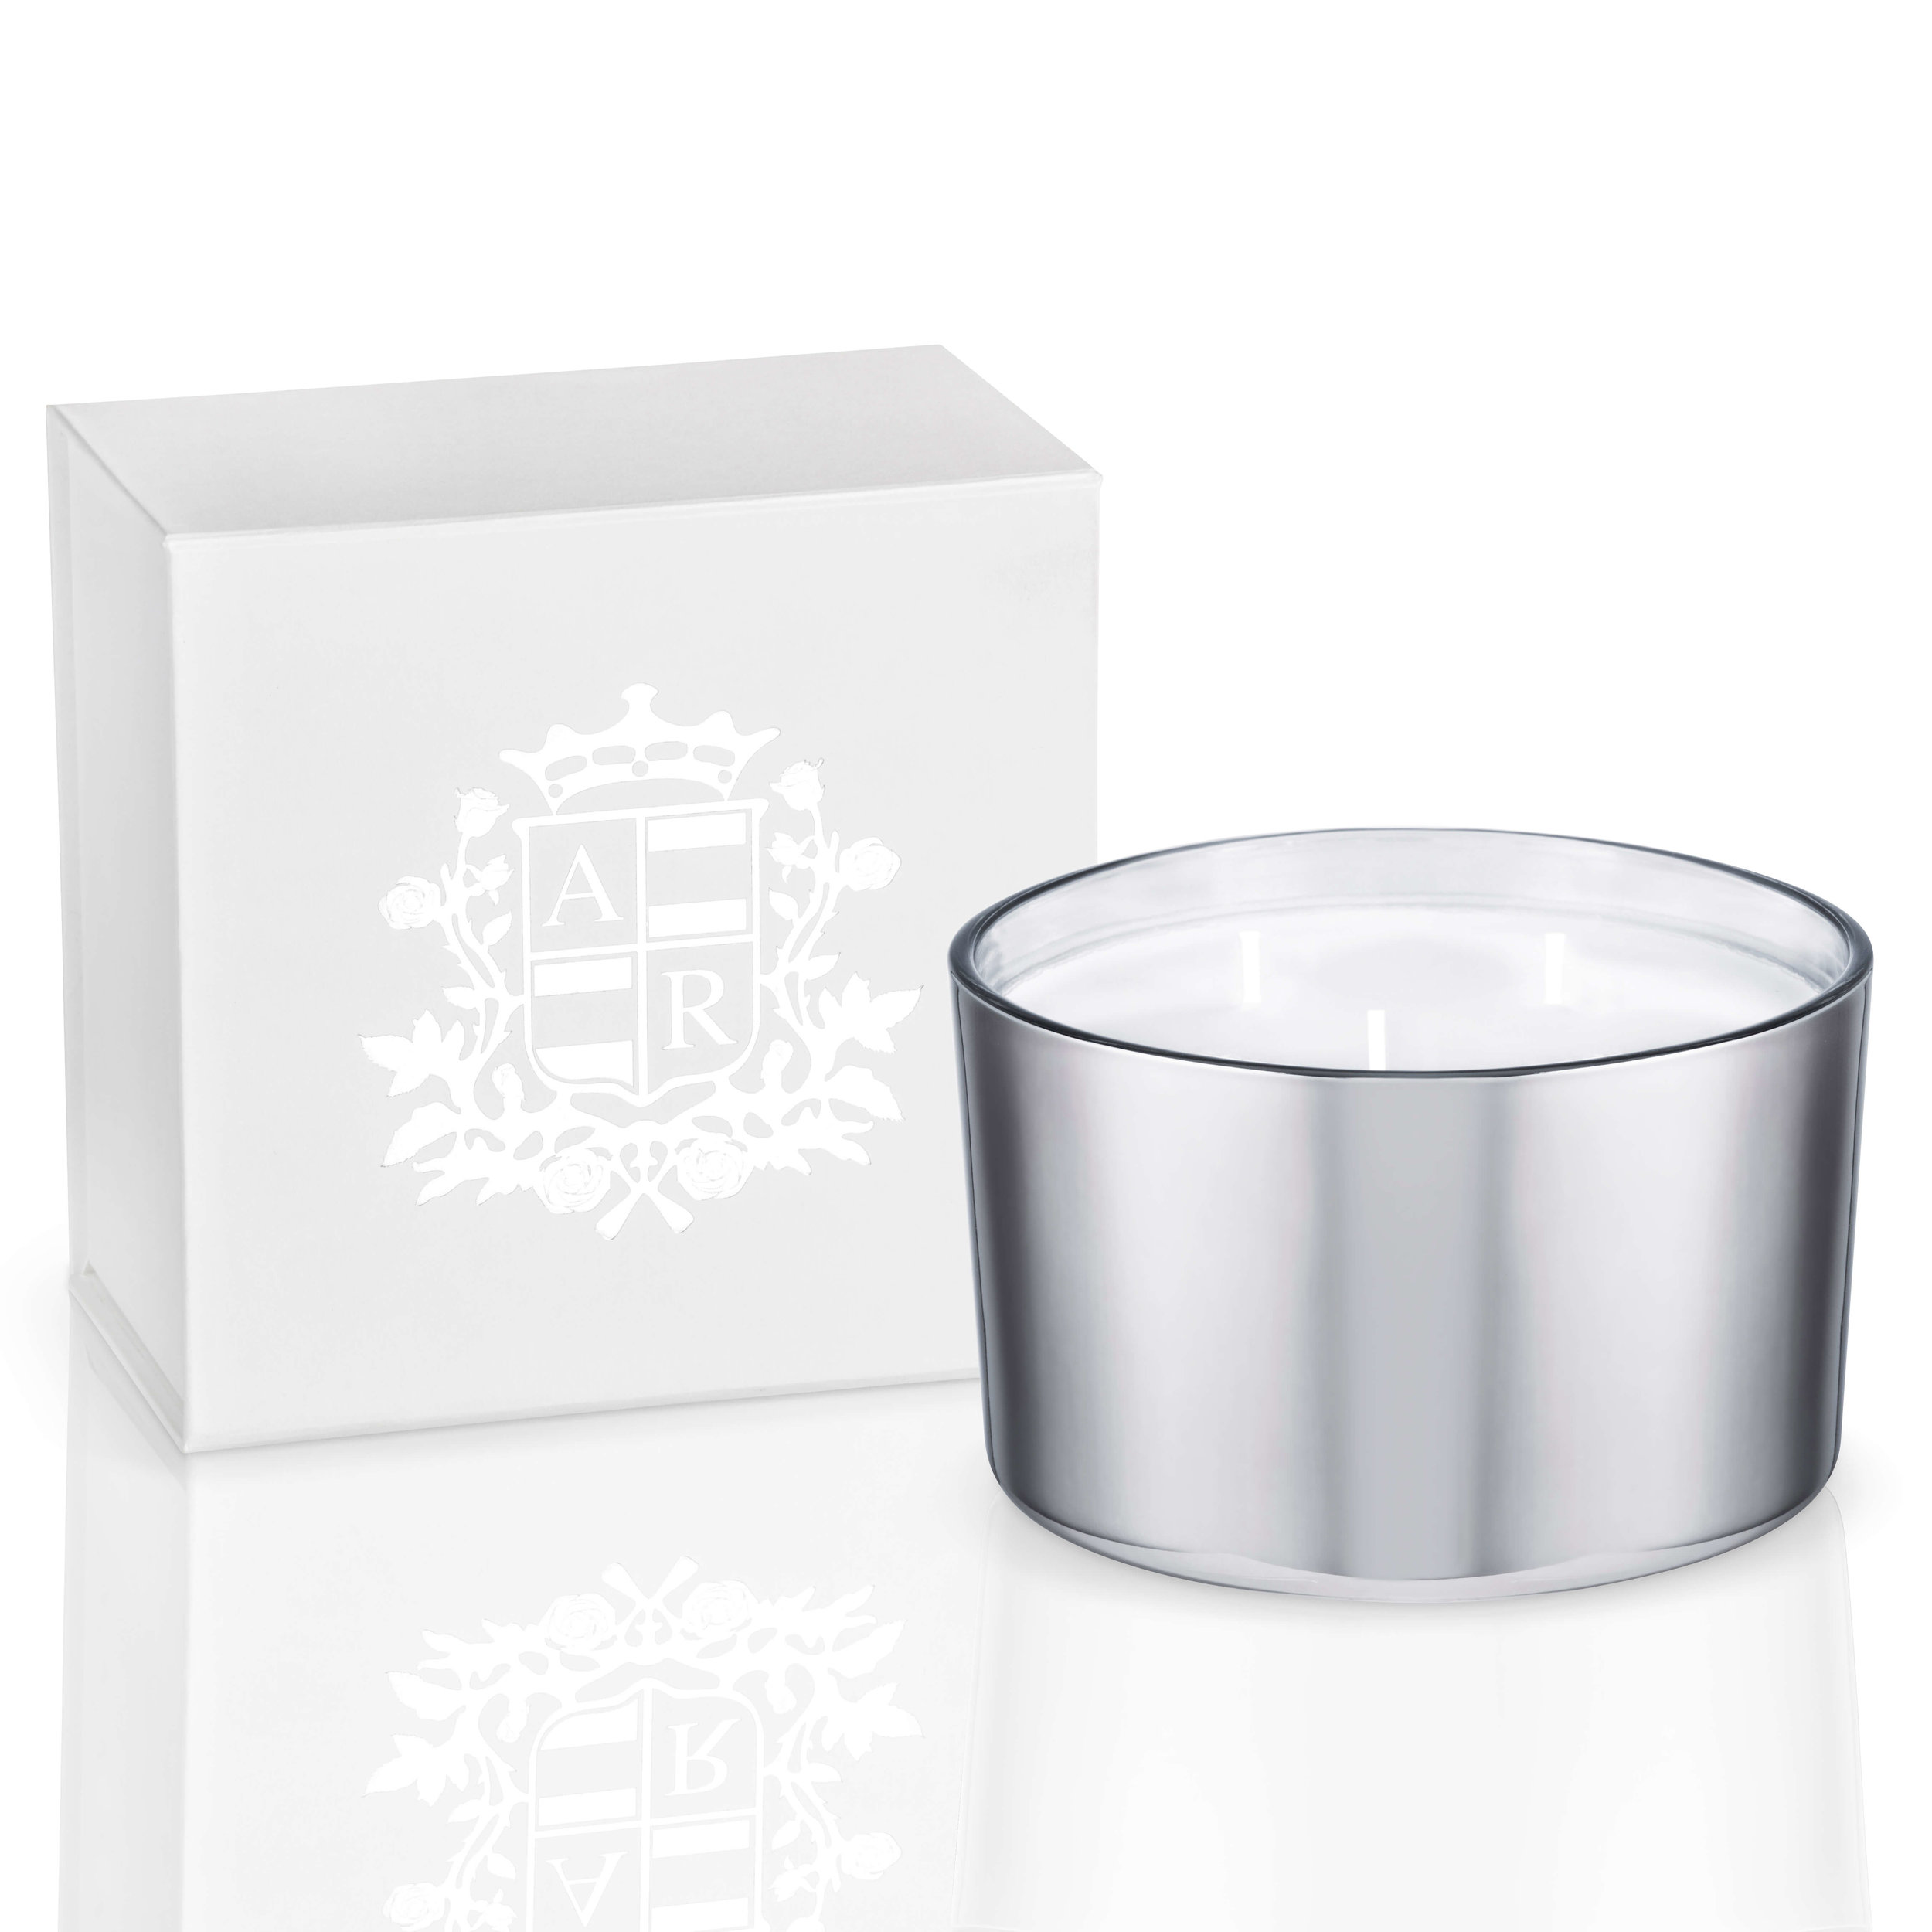 Abbey Rose Ultra Large Three Wick Candle, 500g, Burn Time 70 Hours, RRP $129.silver.jpg